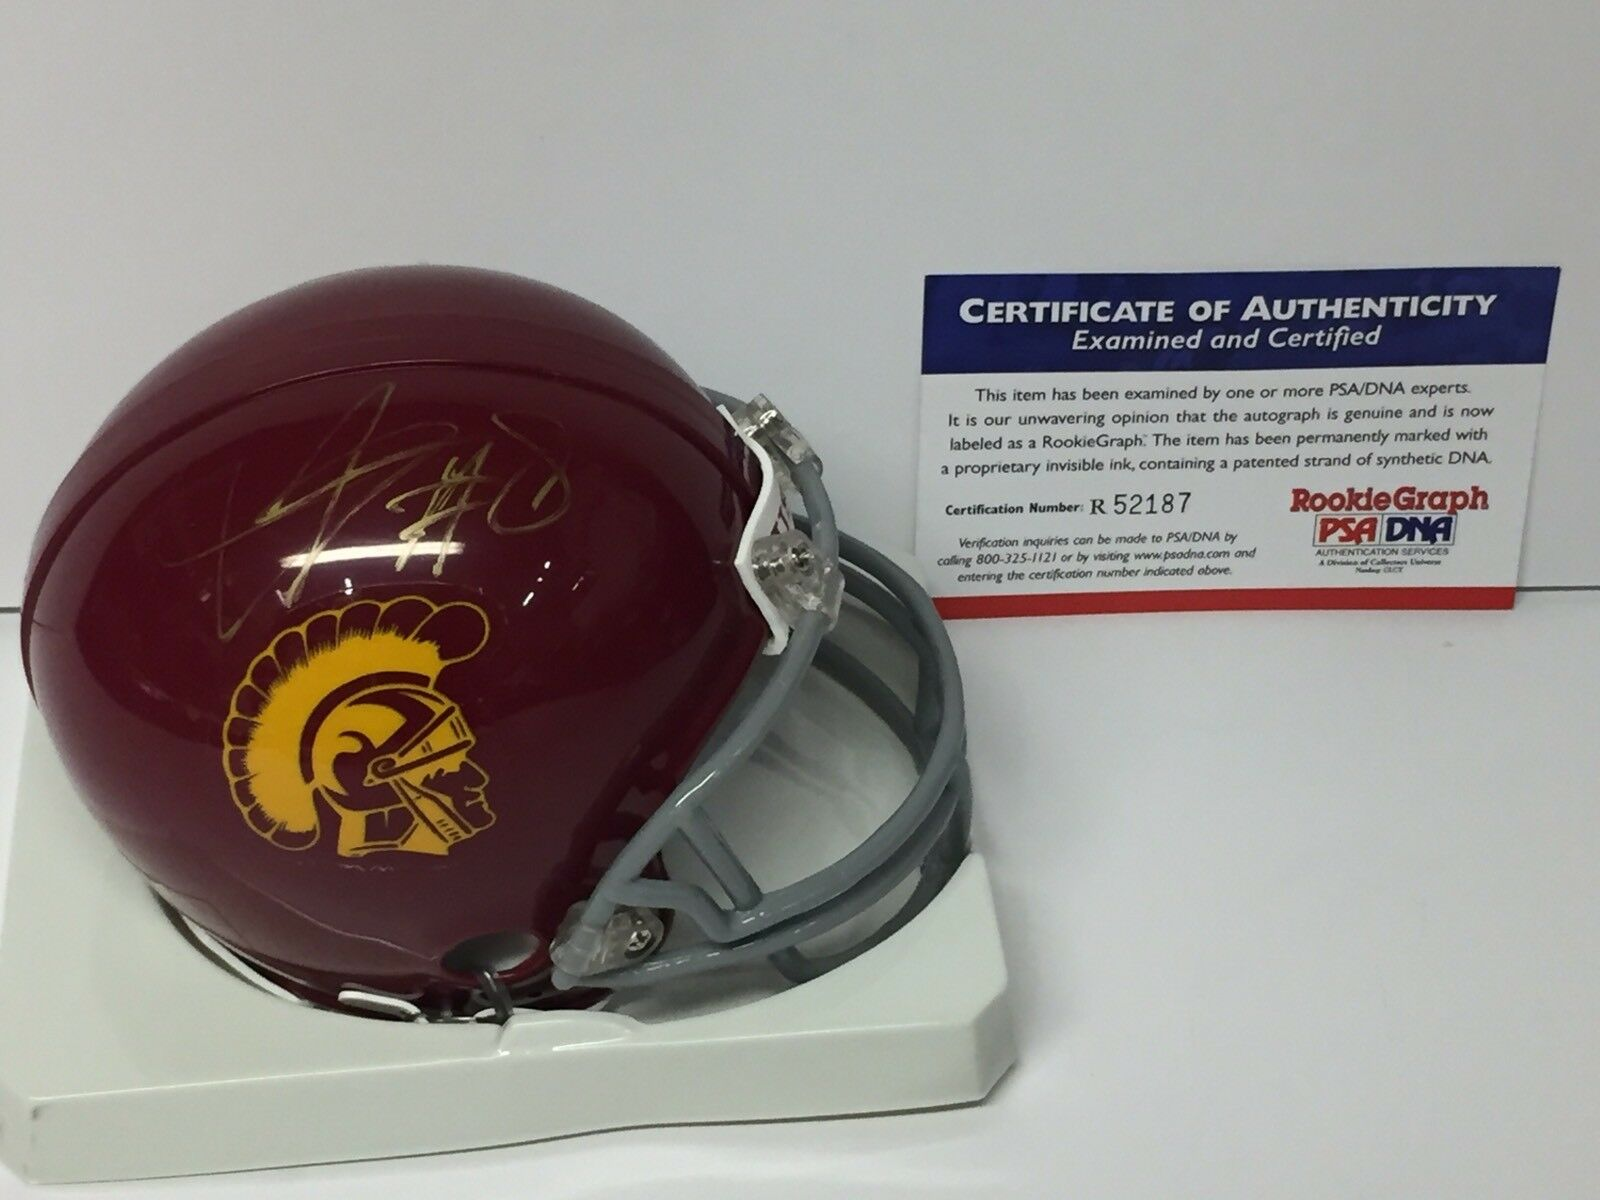 Dwayne Jarrett Signed USC Trojans Football Mini-Helmet PSA Rookie Graph